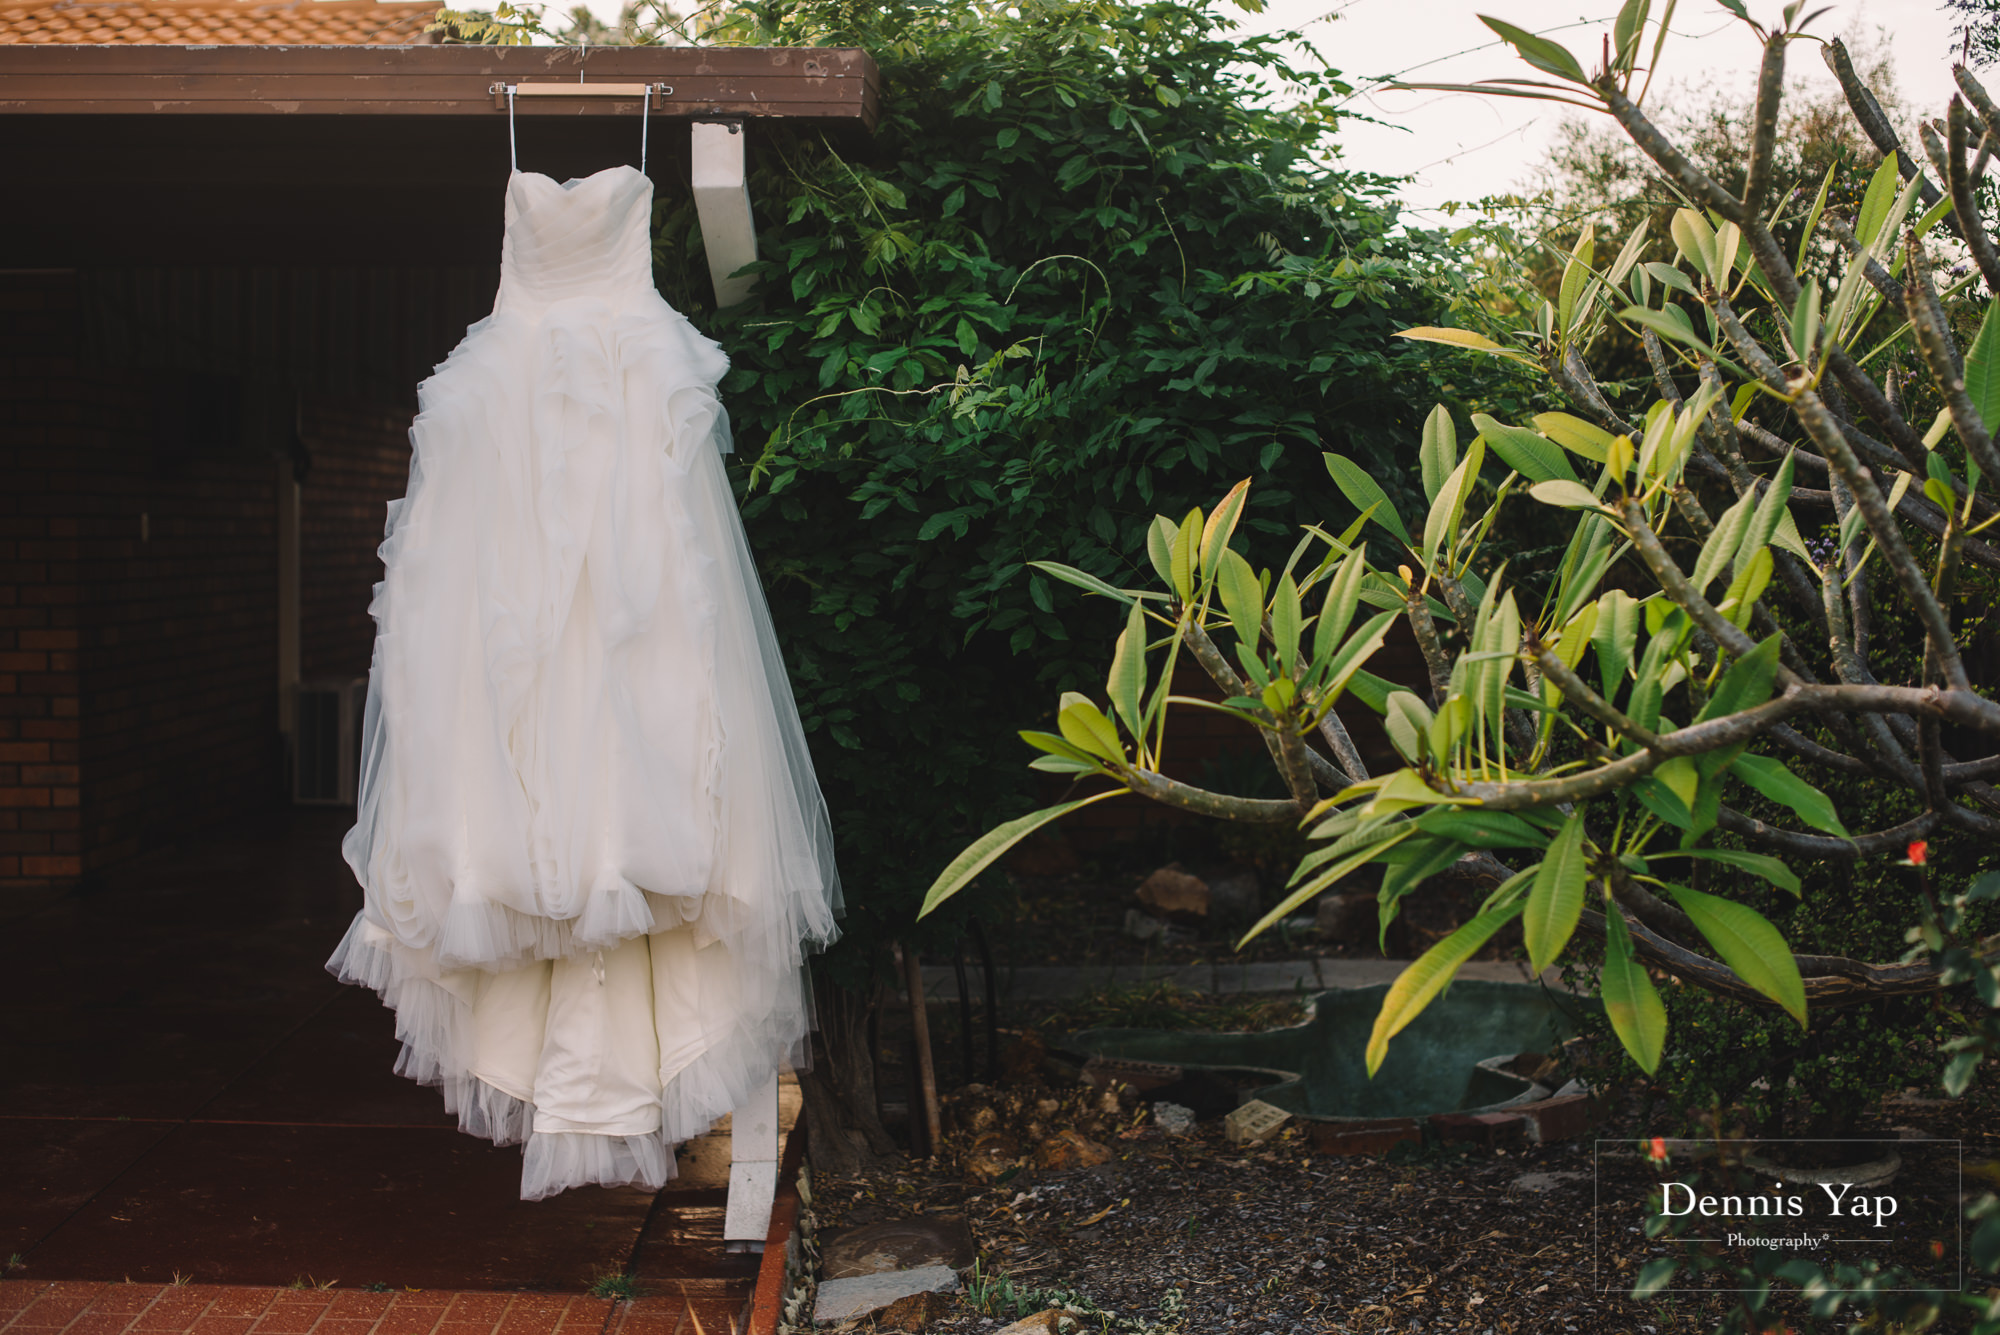 ethan janet perth wedding reception and garden ceremony in lamonts dennis yap photography-1.jpg